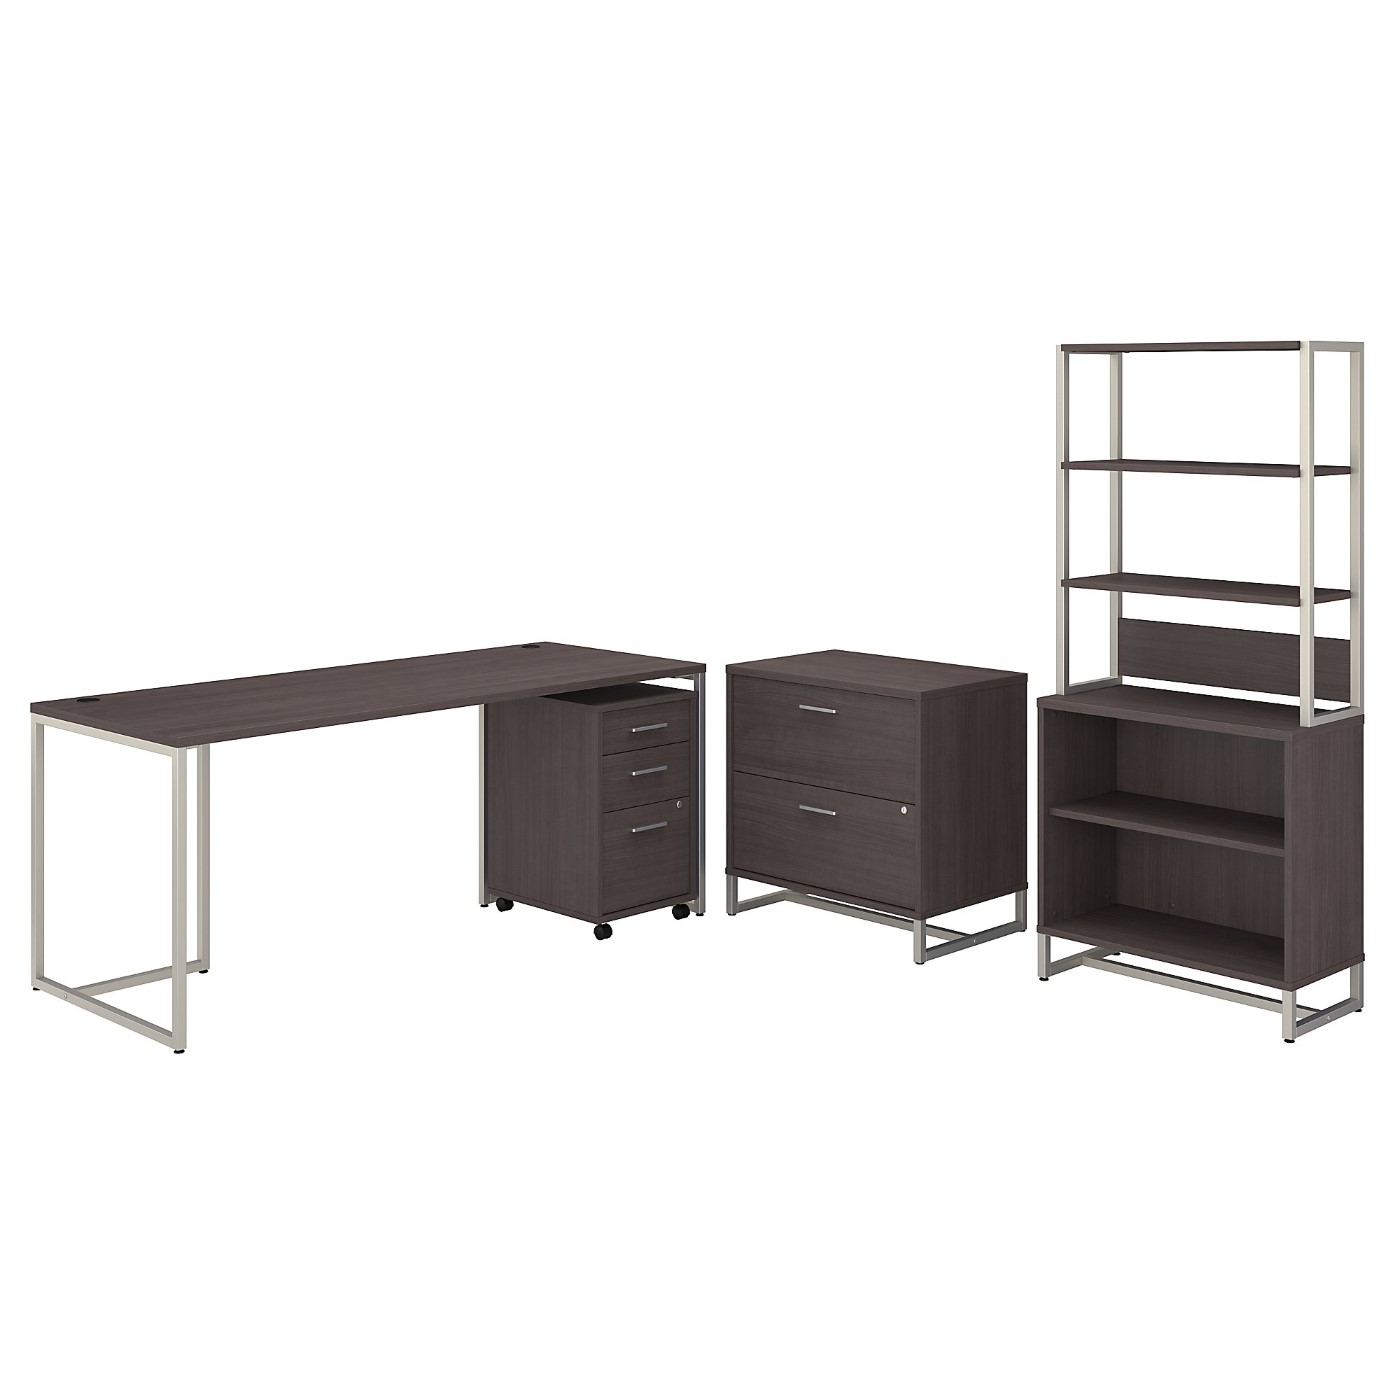 OFFICE BY KATHY IRELAND� METHOD 72W TABLE DESK WITH FILE CABINETS AND BOOKCASE. FREE SHIPPING